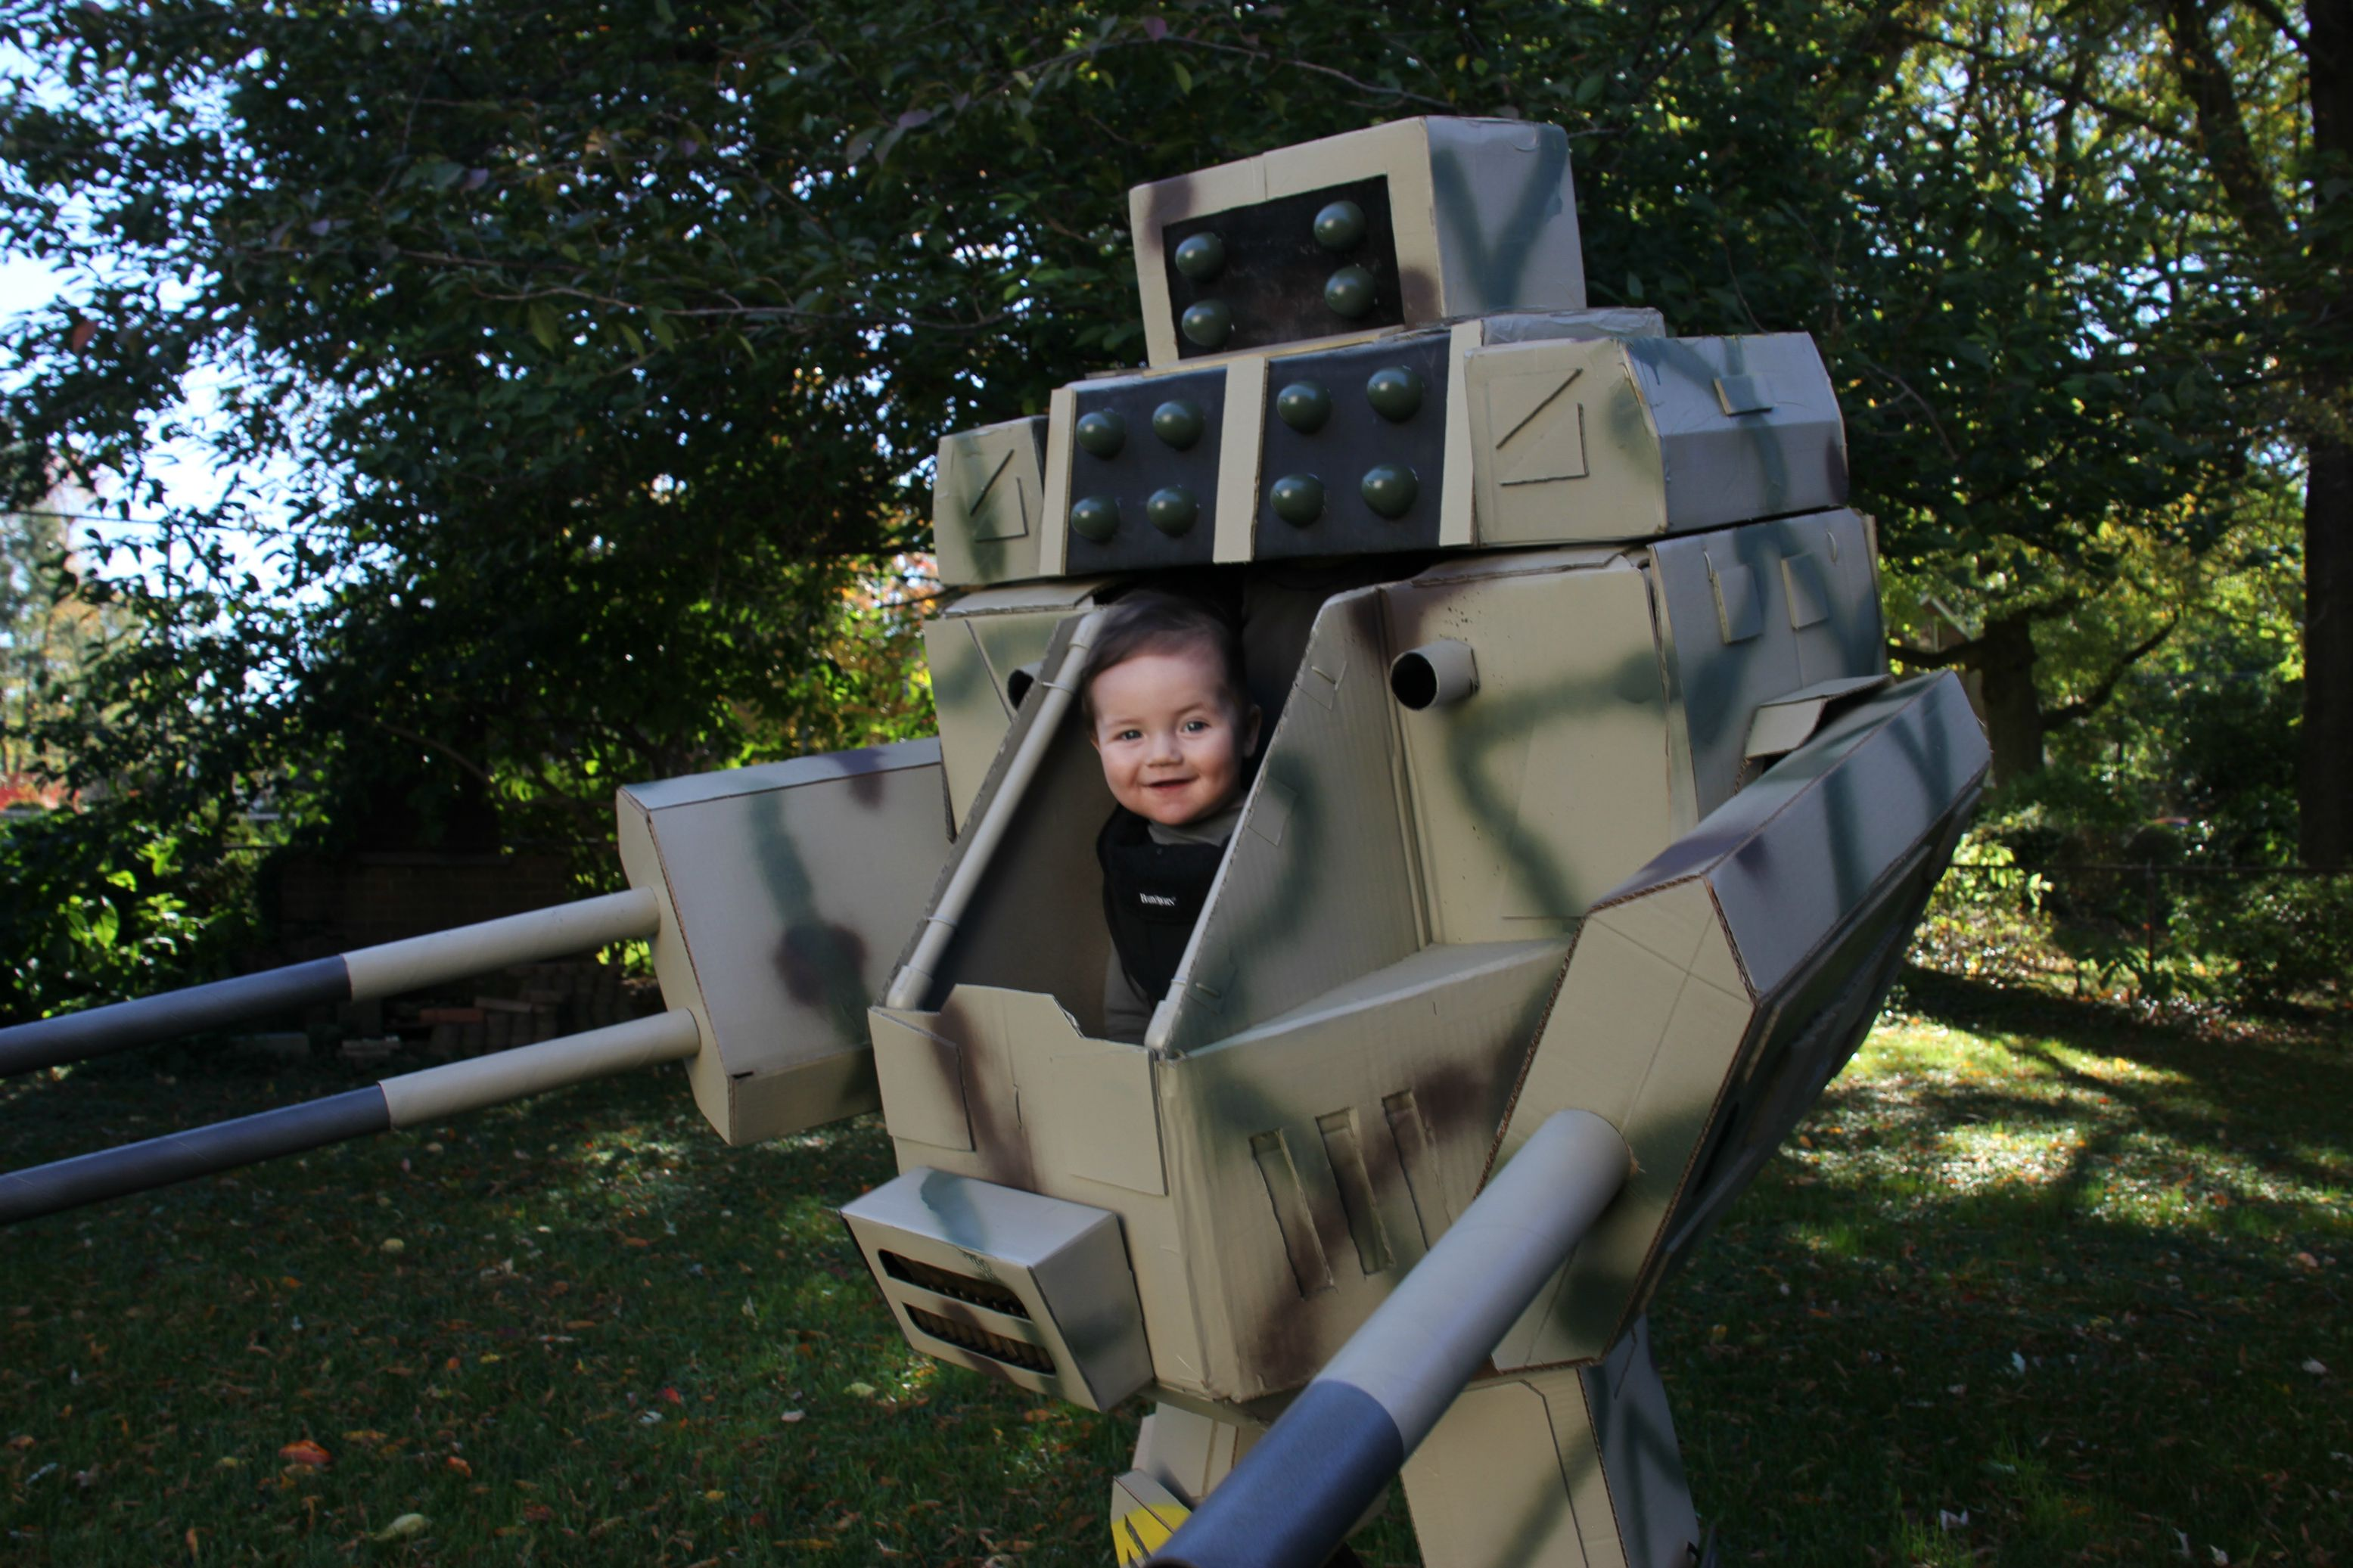 is this mechwarrior the best halloween costume for kids we'll see